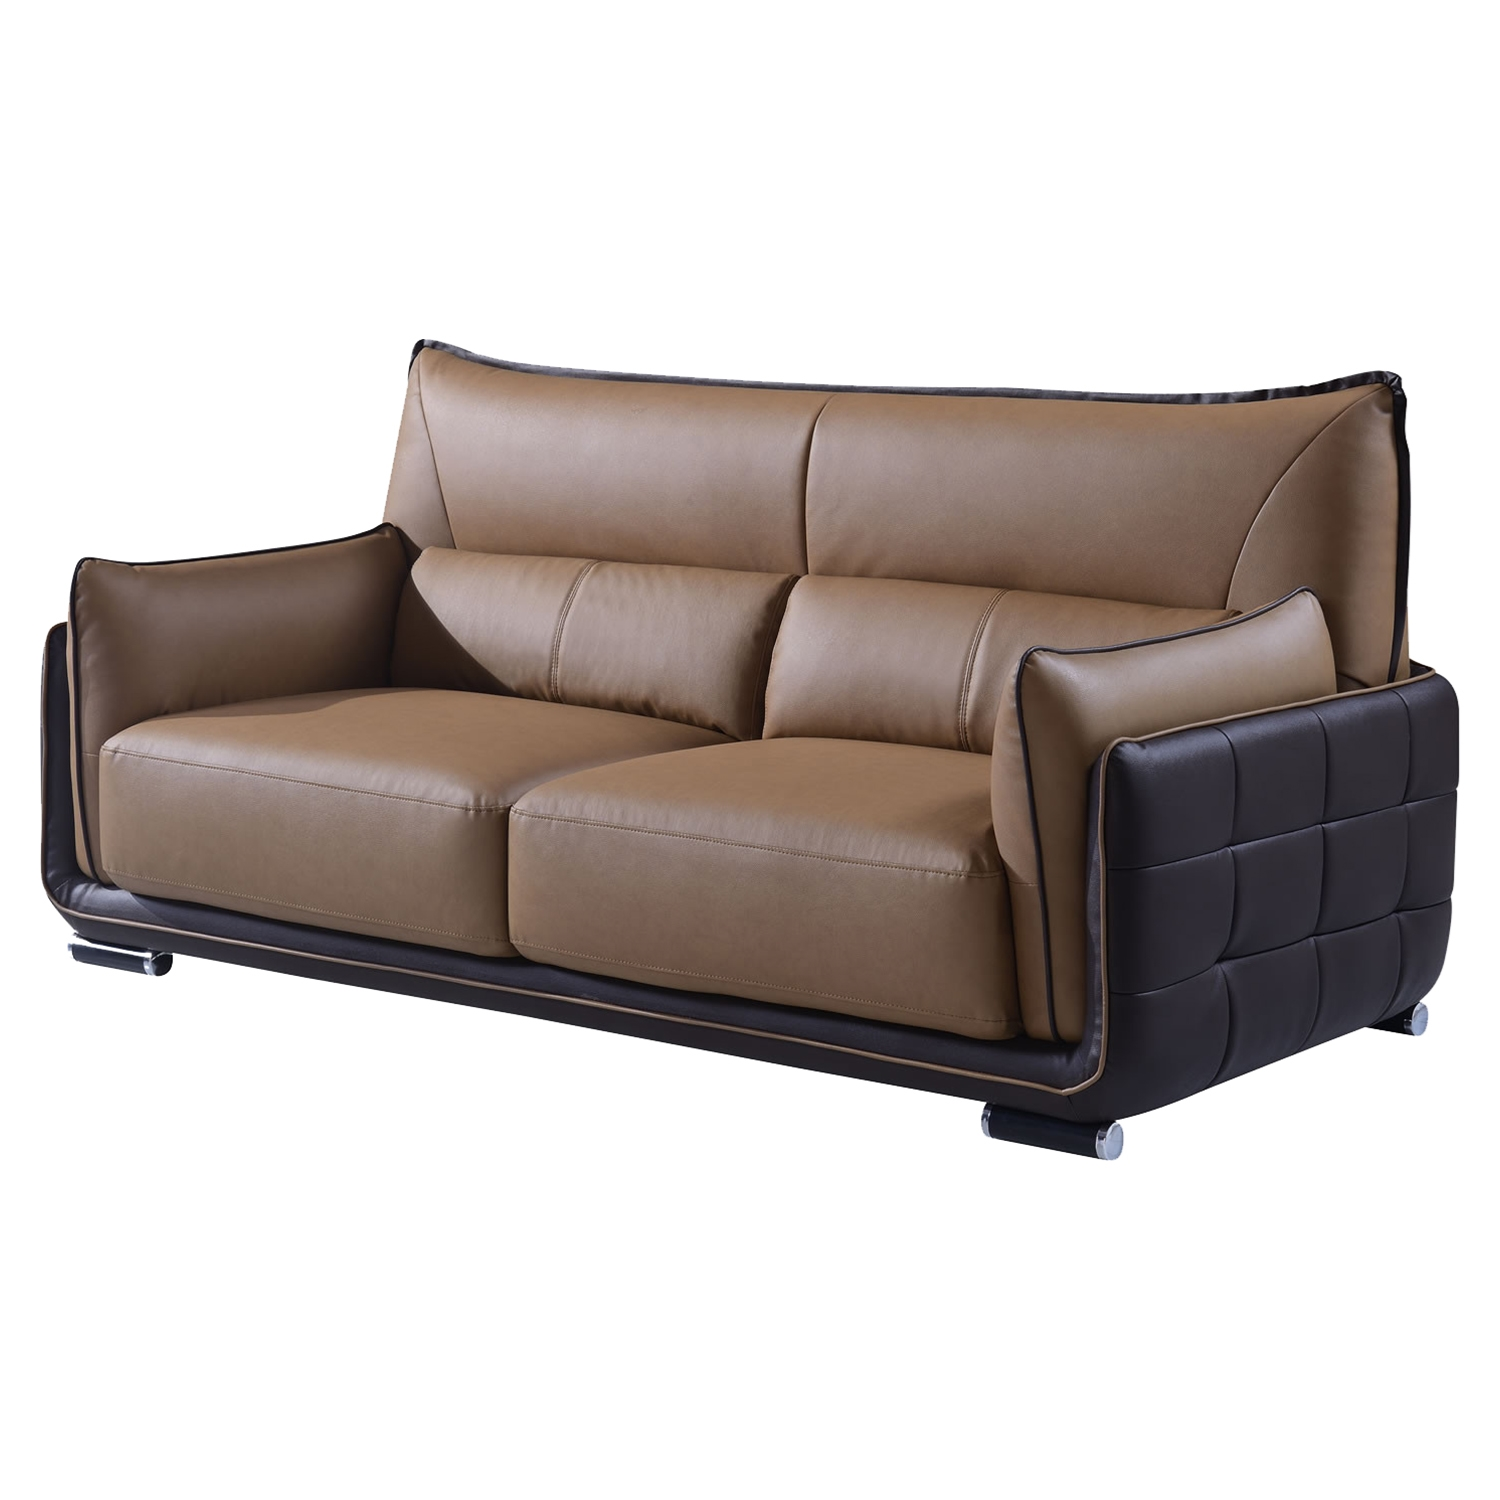 Kaden Sofa in Brown Leather